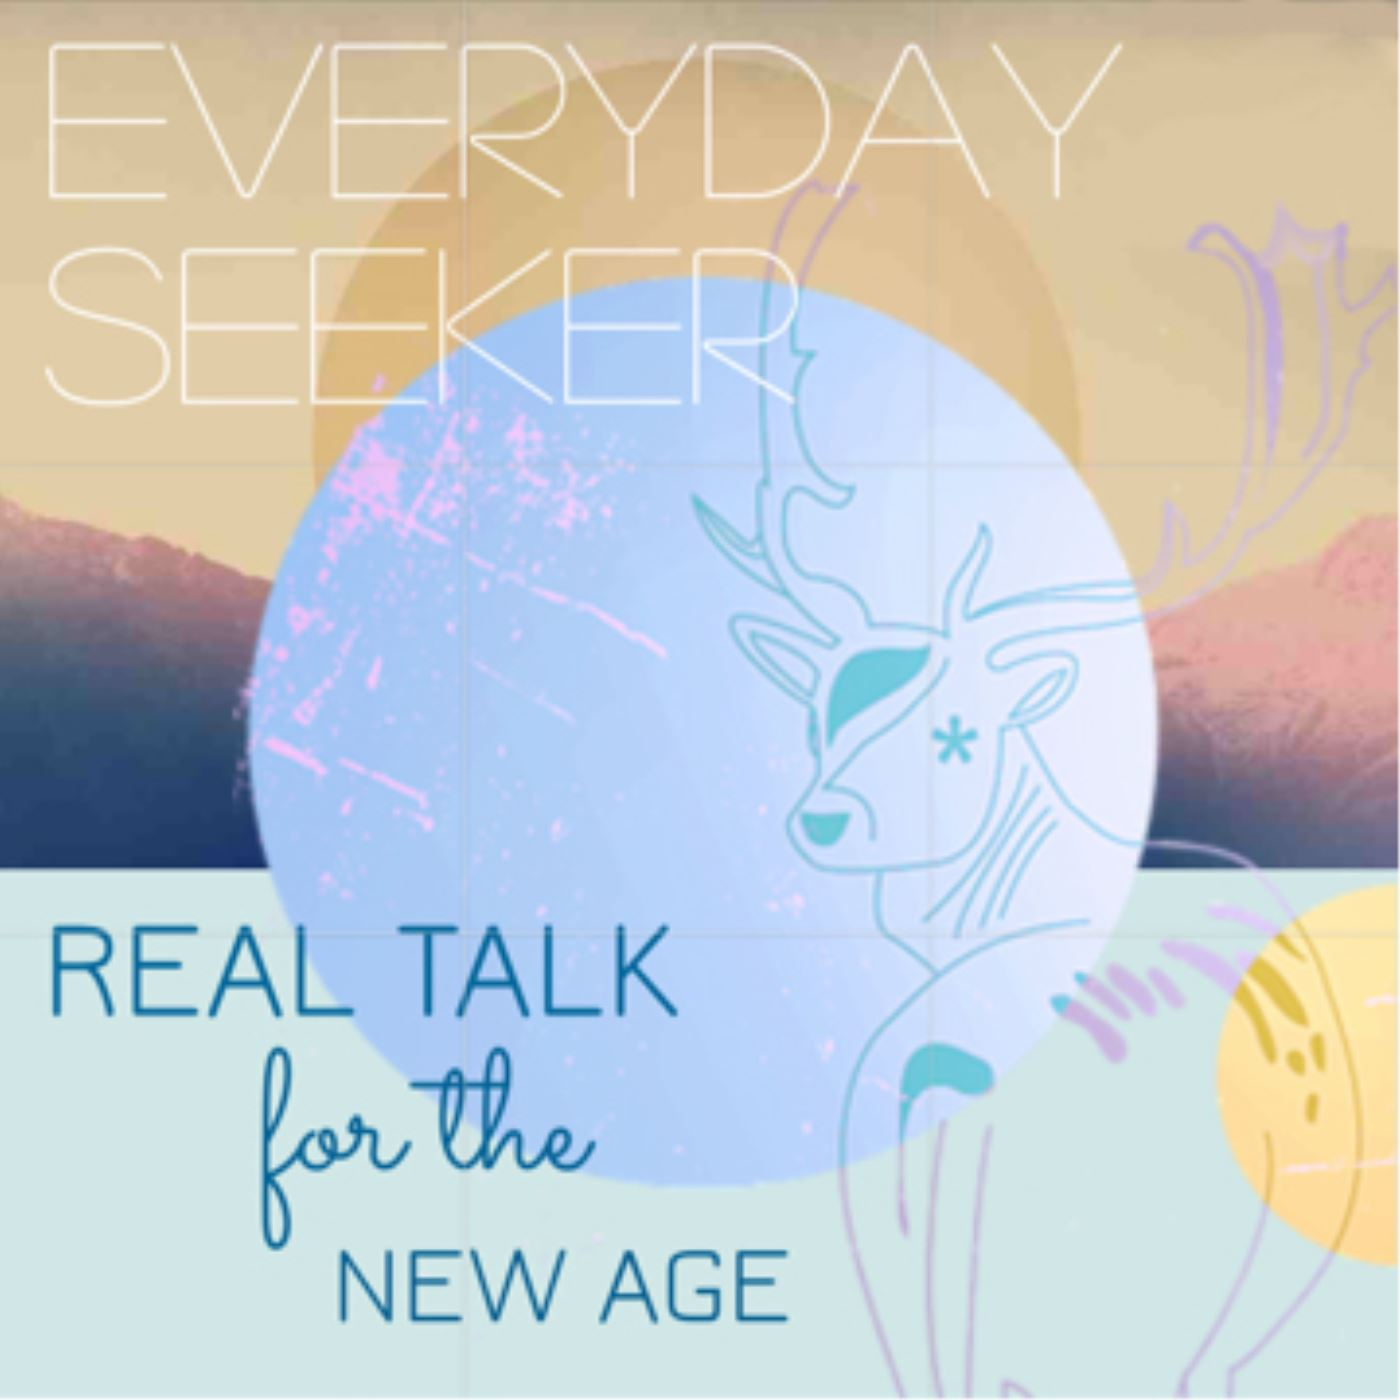 Everyday Seeker: Real Talk for the New Age